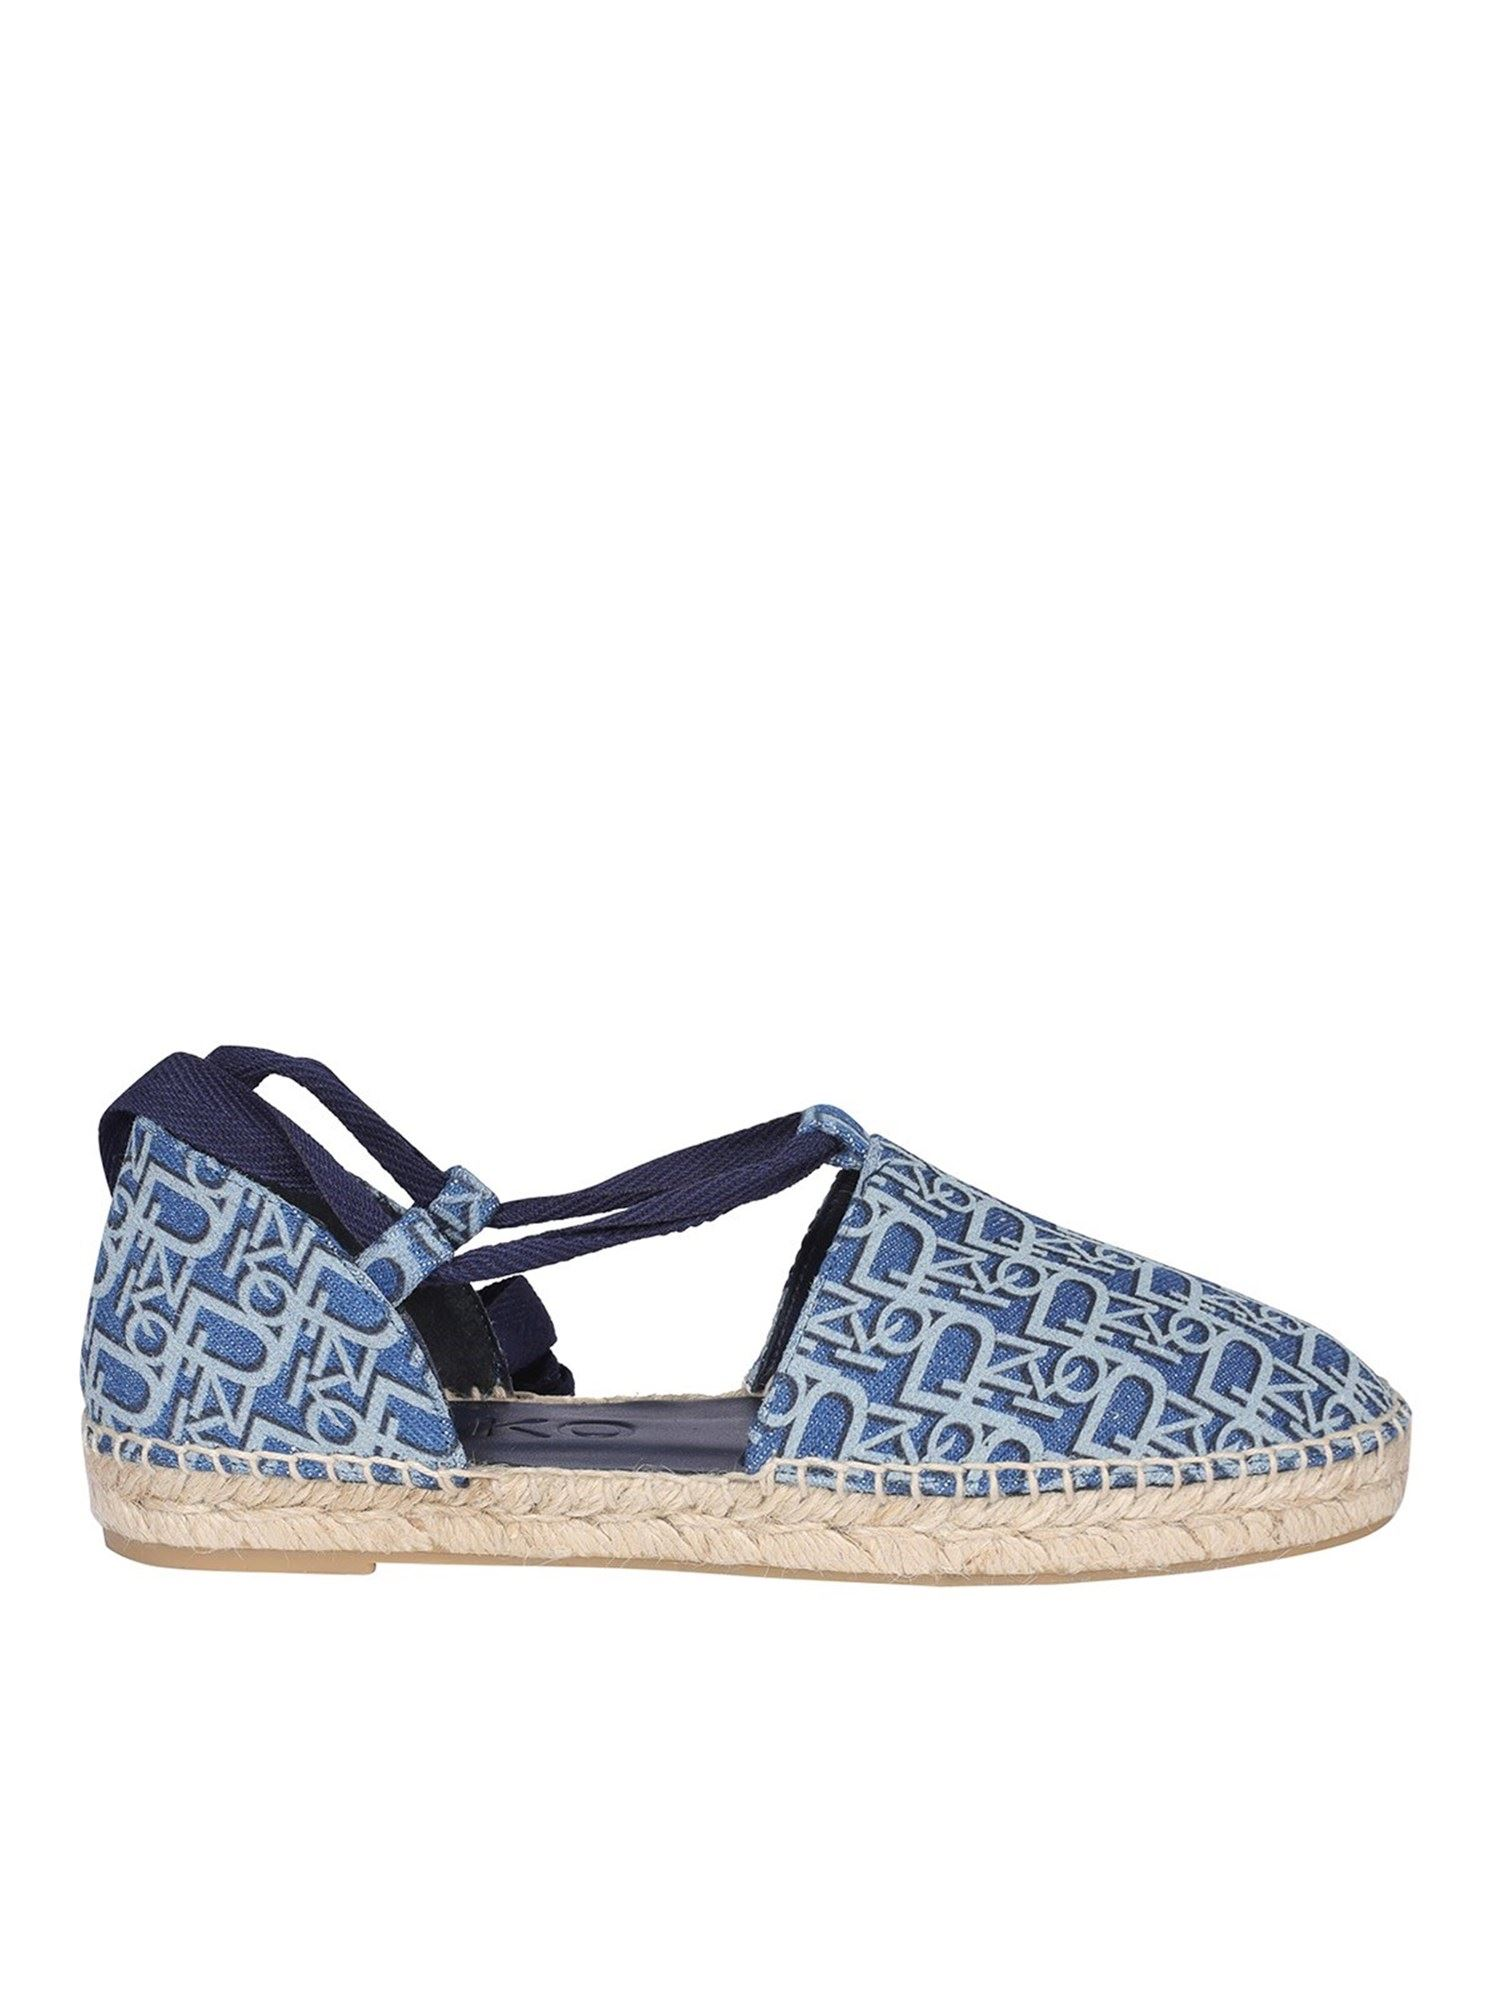 Pinko PINKO DENIM EFFECT ESPADRILLES IN BLUE